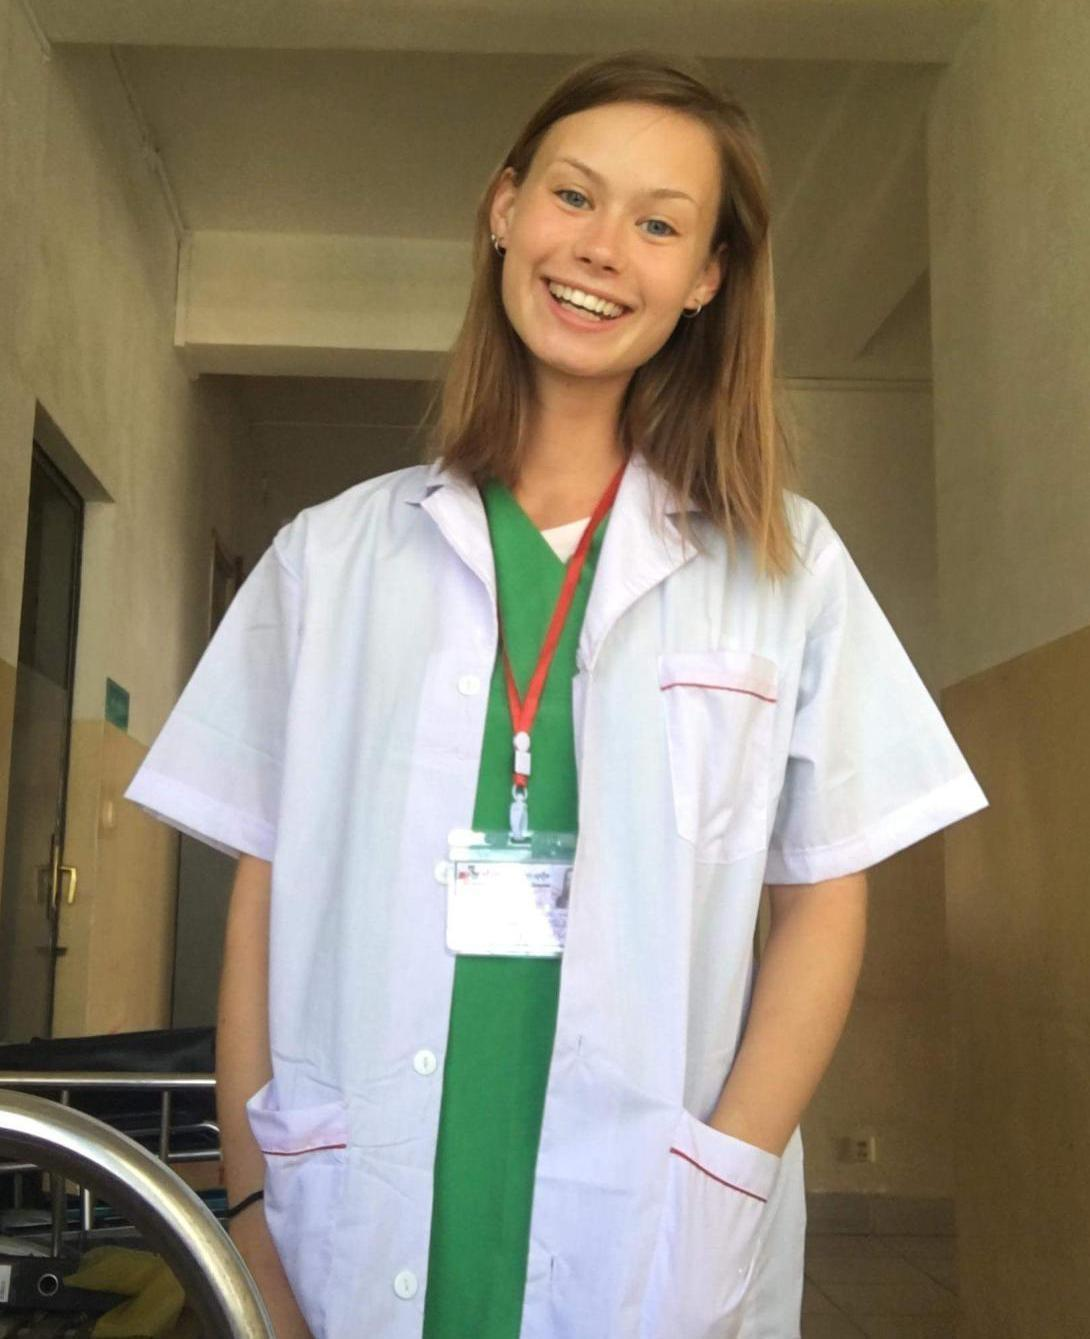 A medical volunteer smiles during her international internship in Cambodia